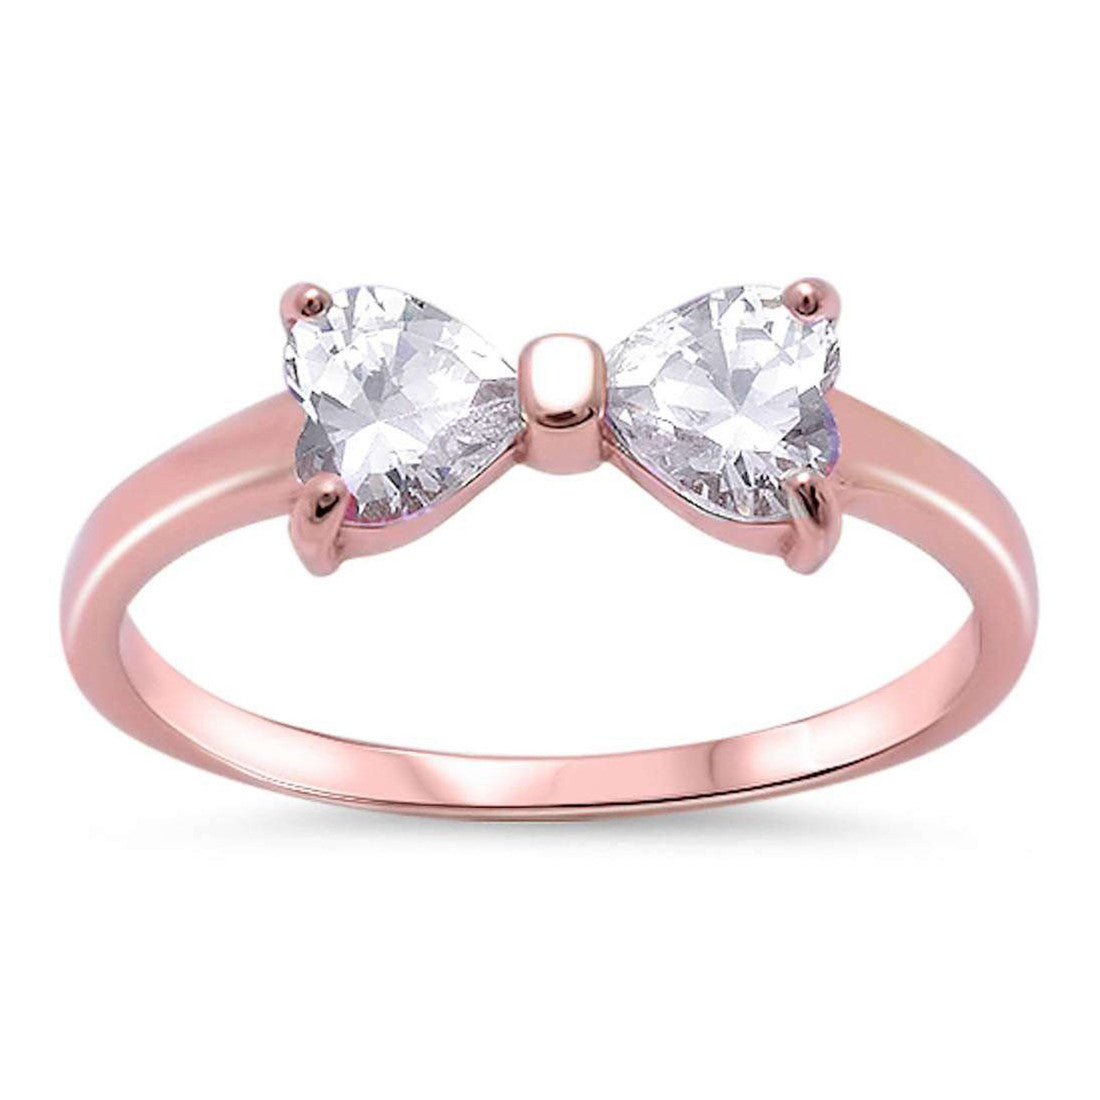 wedding rose products il an engagement morganite peach pink rings heart gold shaped fullxfull ring with